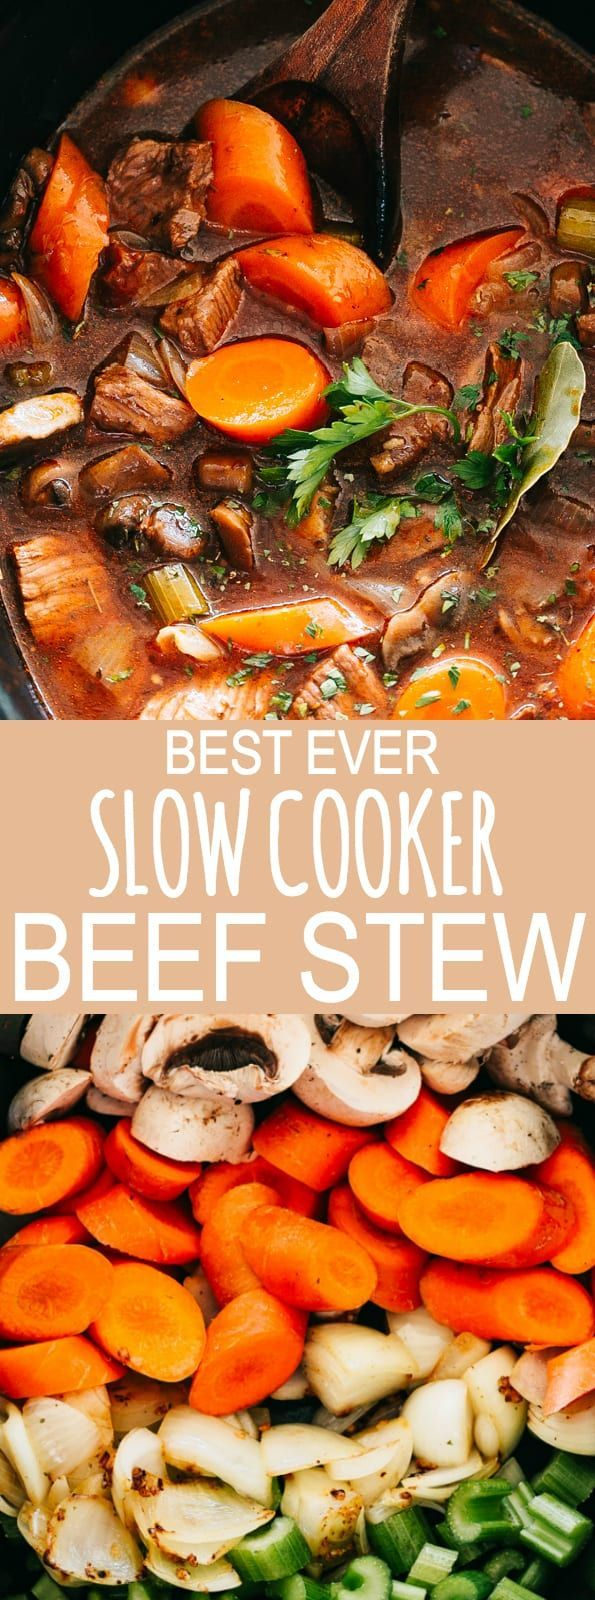 #slowcookerbeefstew #slowcookerrecipes #crockpotrecipes #lowcarbrecipes #lowcarbdinner #dinnerrecipe...